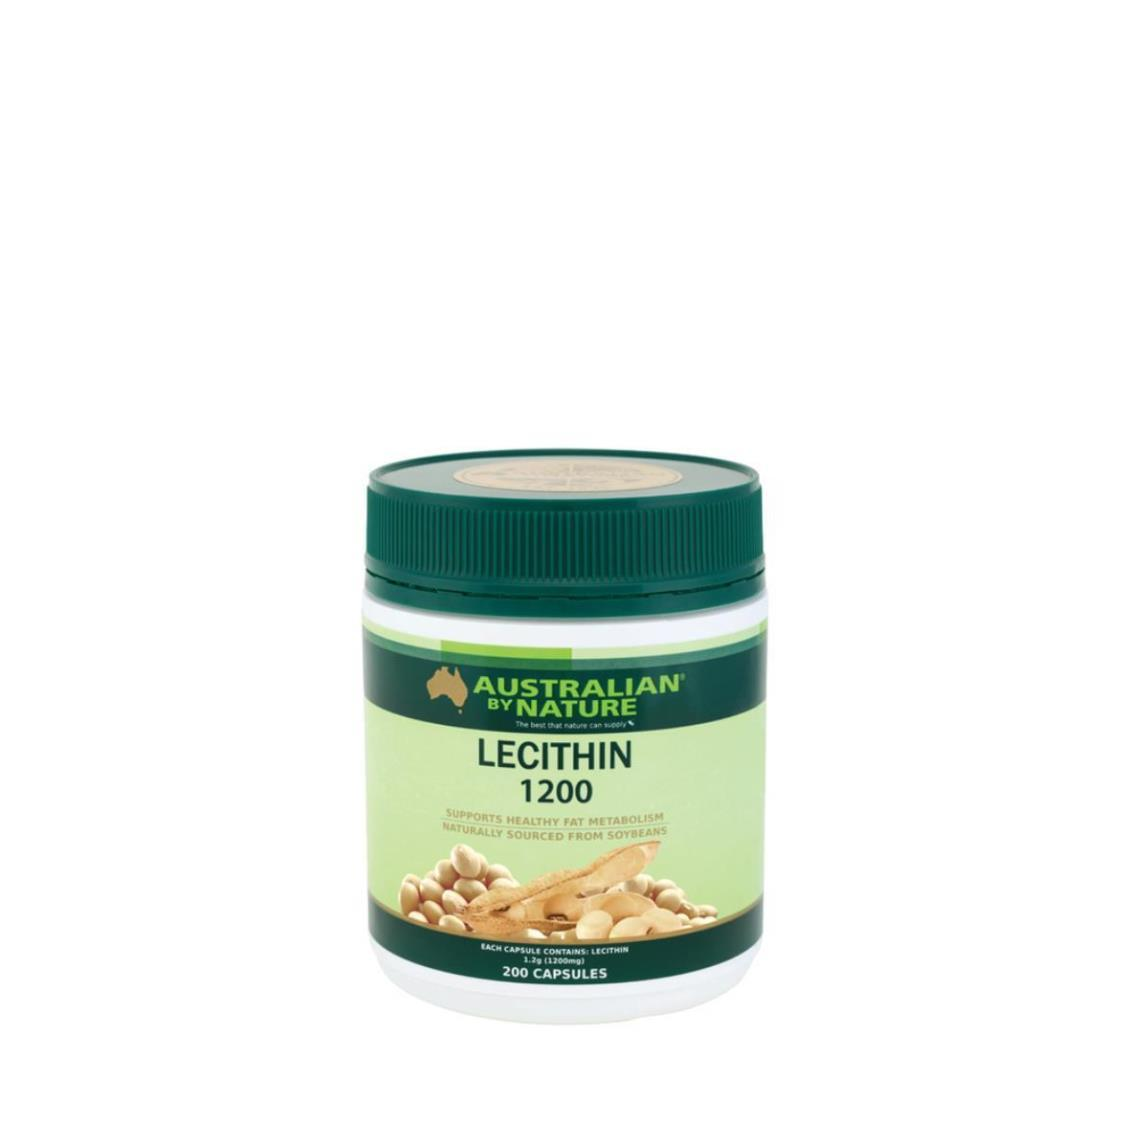 Australian By Nature Lecithin 1200mg 200 Capsules